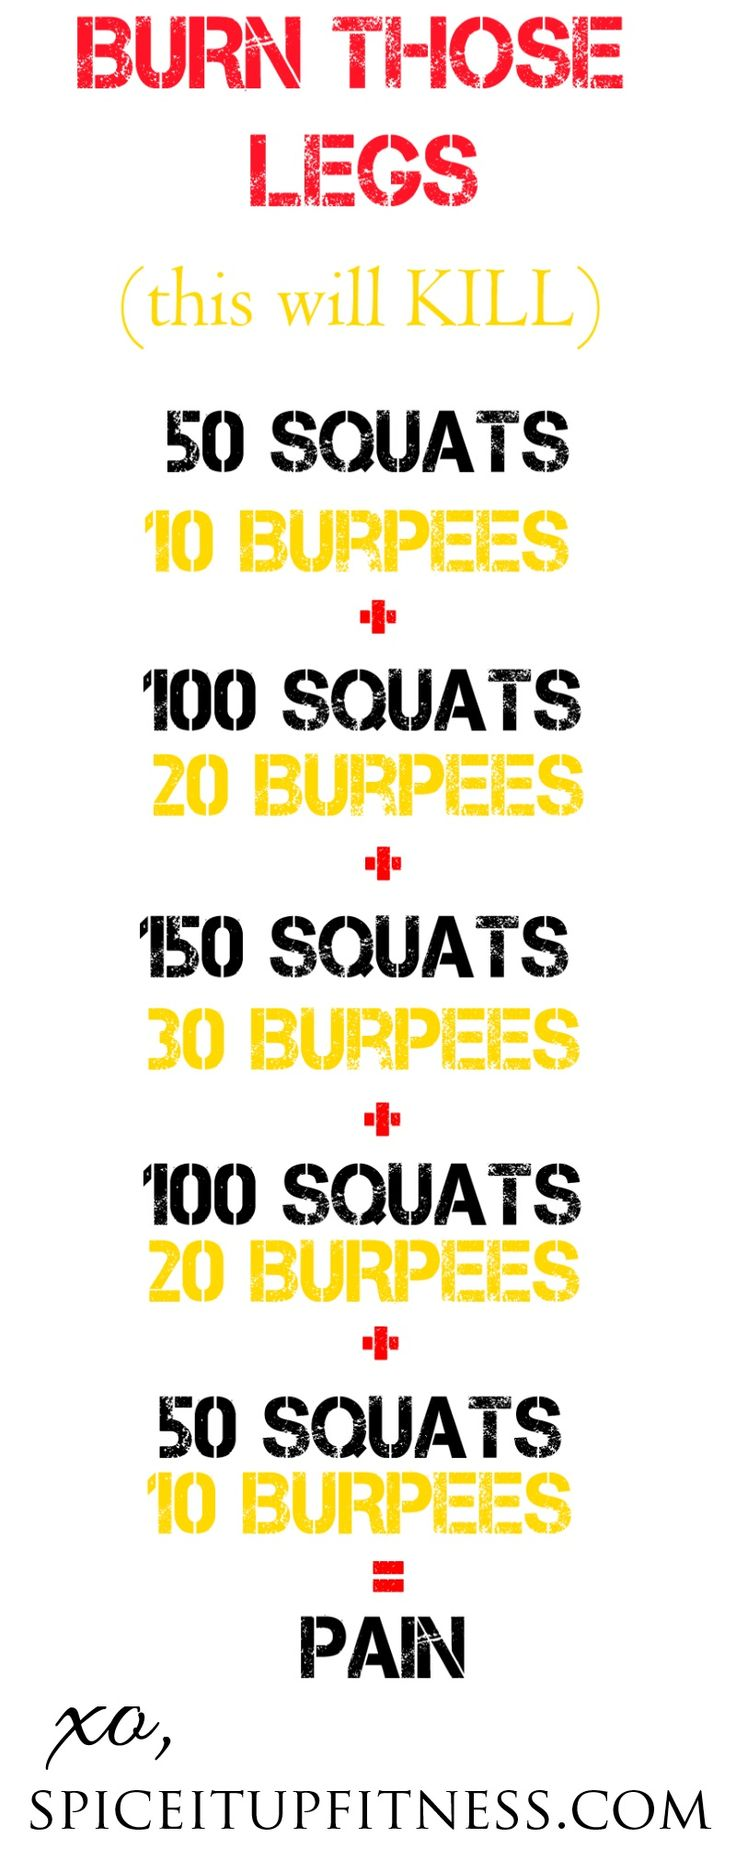 Awesome home workout for making those legs BURN! :-) | See more about home workouts, leg workouts and workout at home.